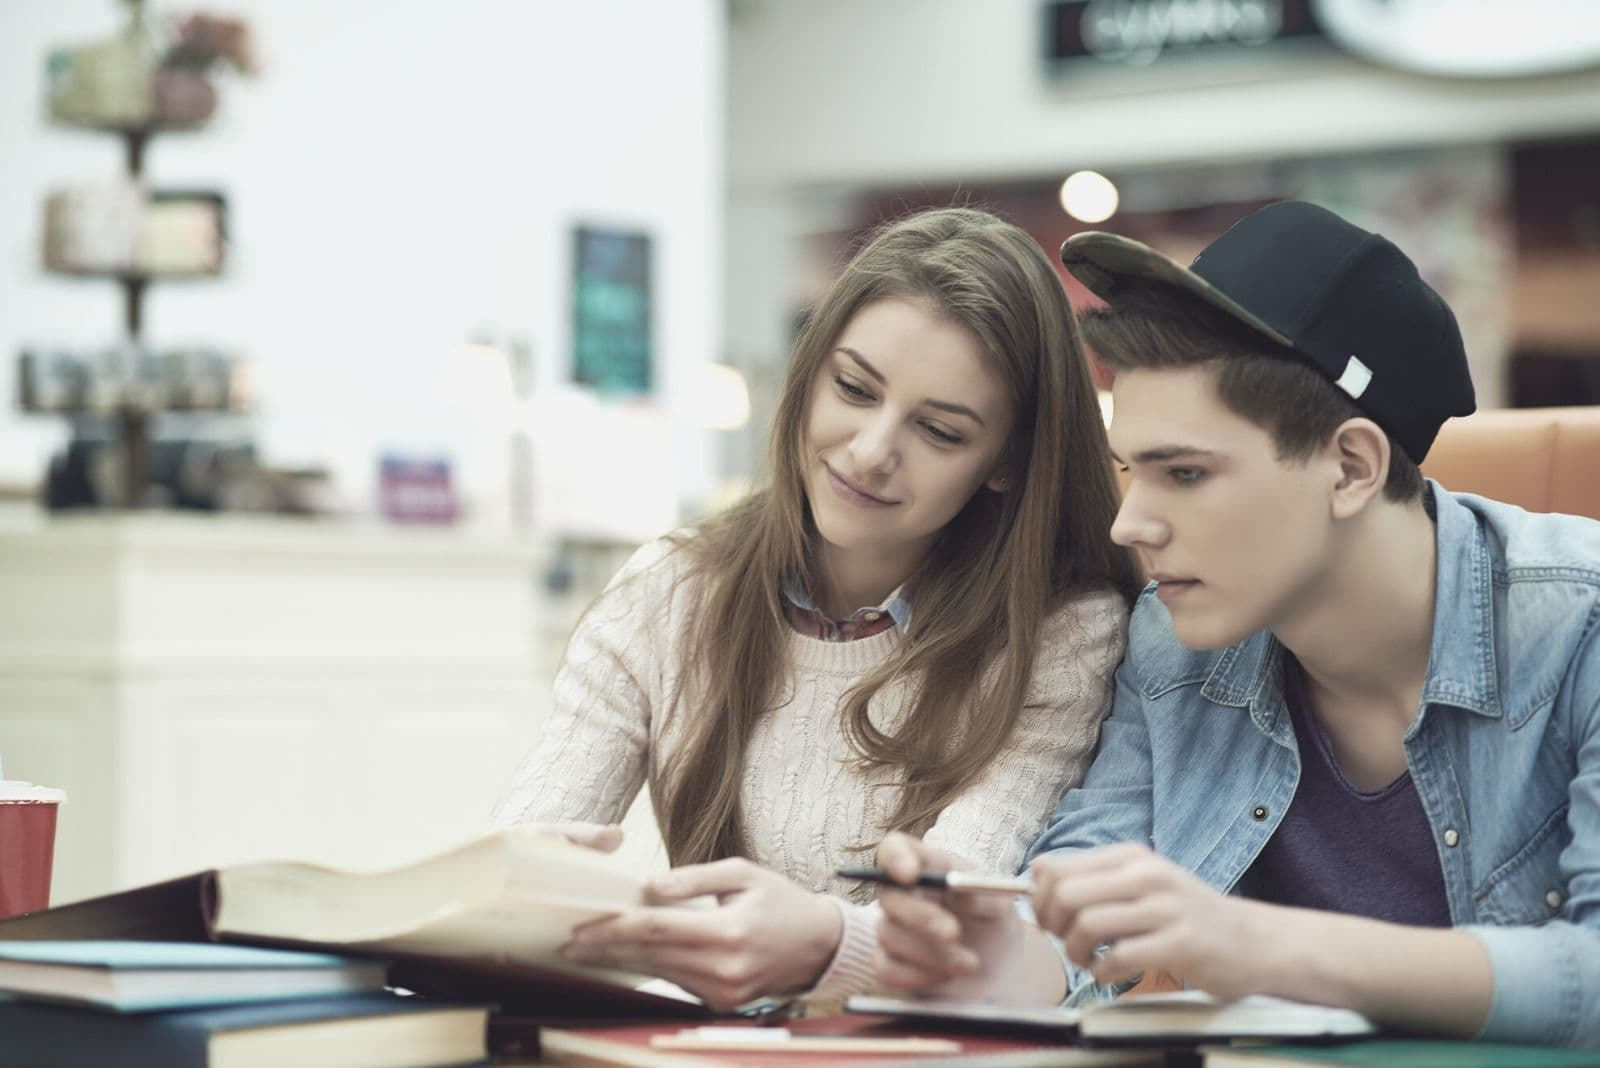 college couple studying inside the cafe with books on the table